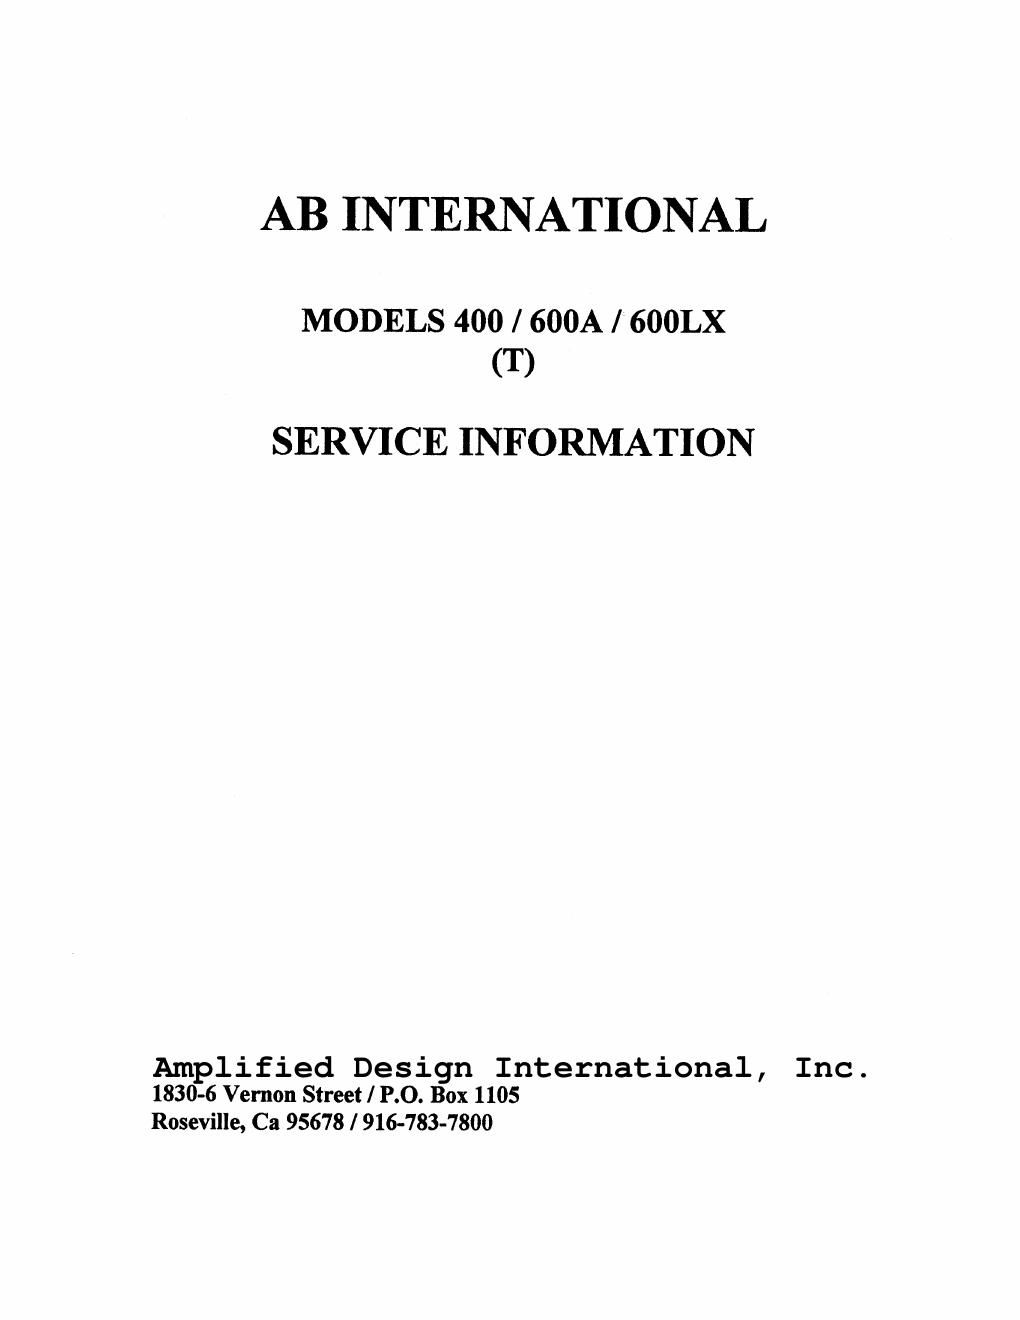 AB International 400 600A 600LX Service Manual